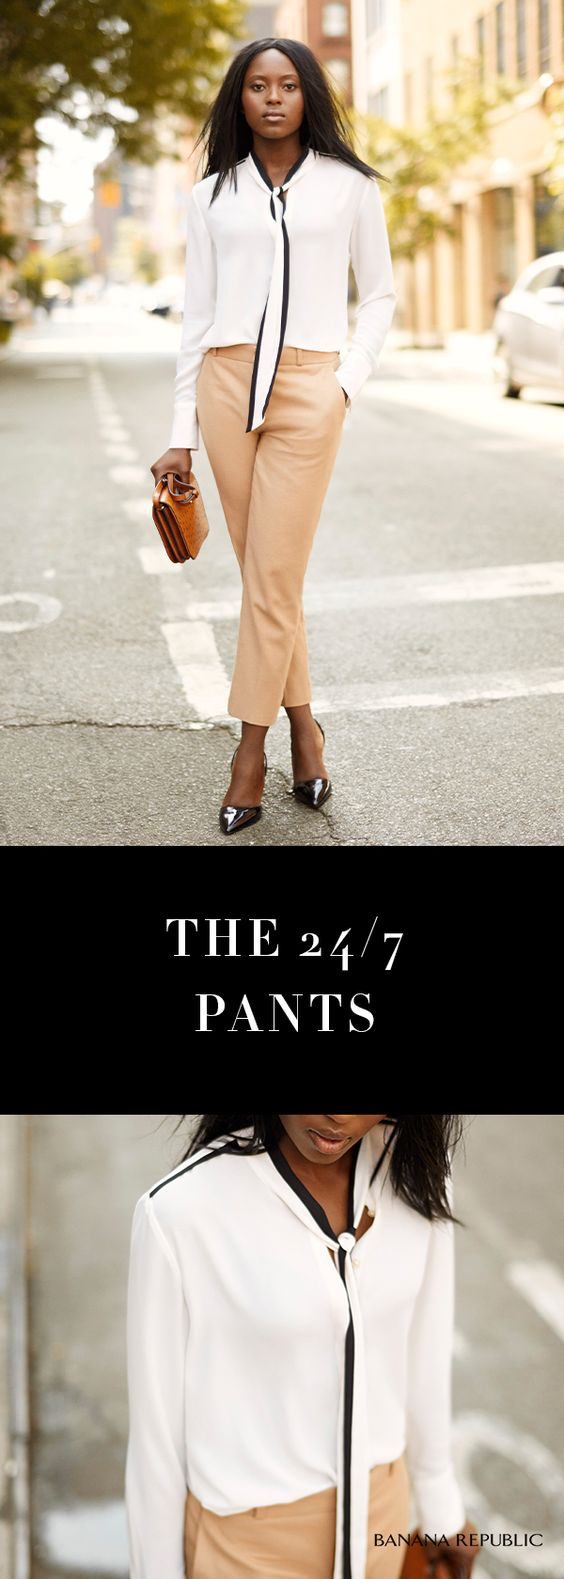 Take your suit pants and wear them your way. With the jacket or solo with a super chic tie-front blouse & heels. Works for work but the options go well beyond 9-5. Travels well, loves a date night & works with sneakers all weekend. These pants have legs.